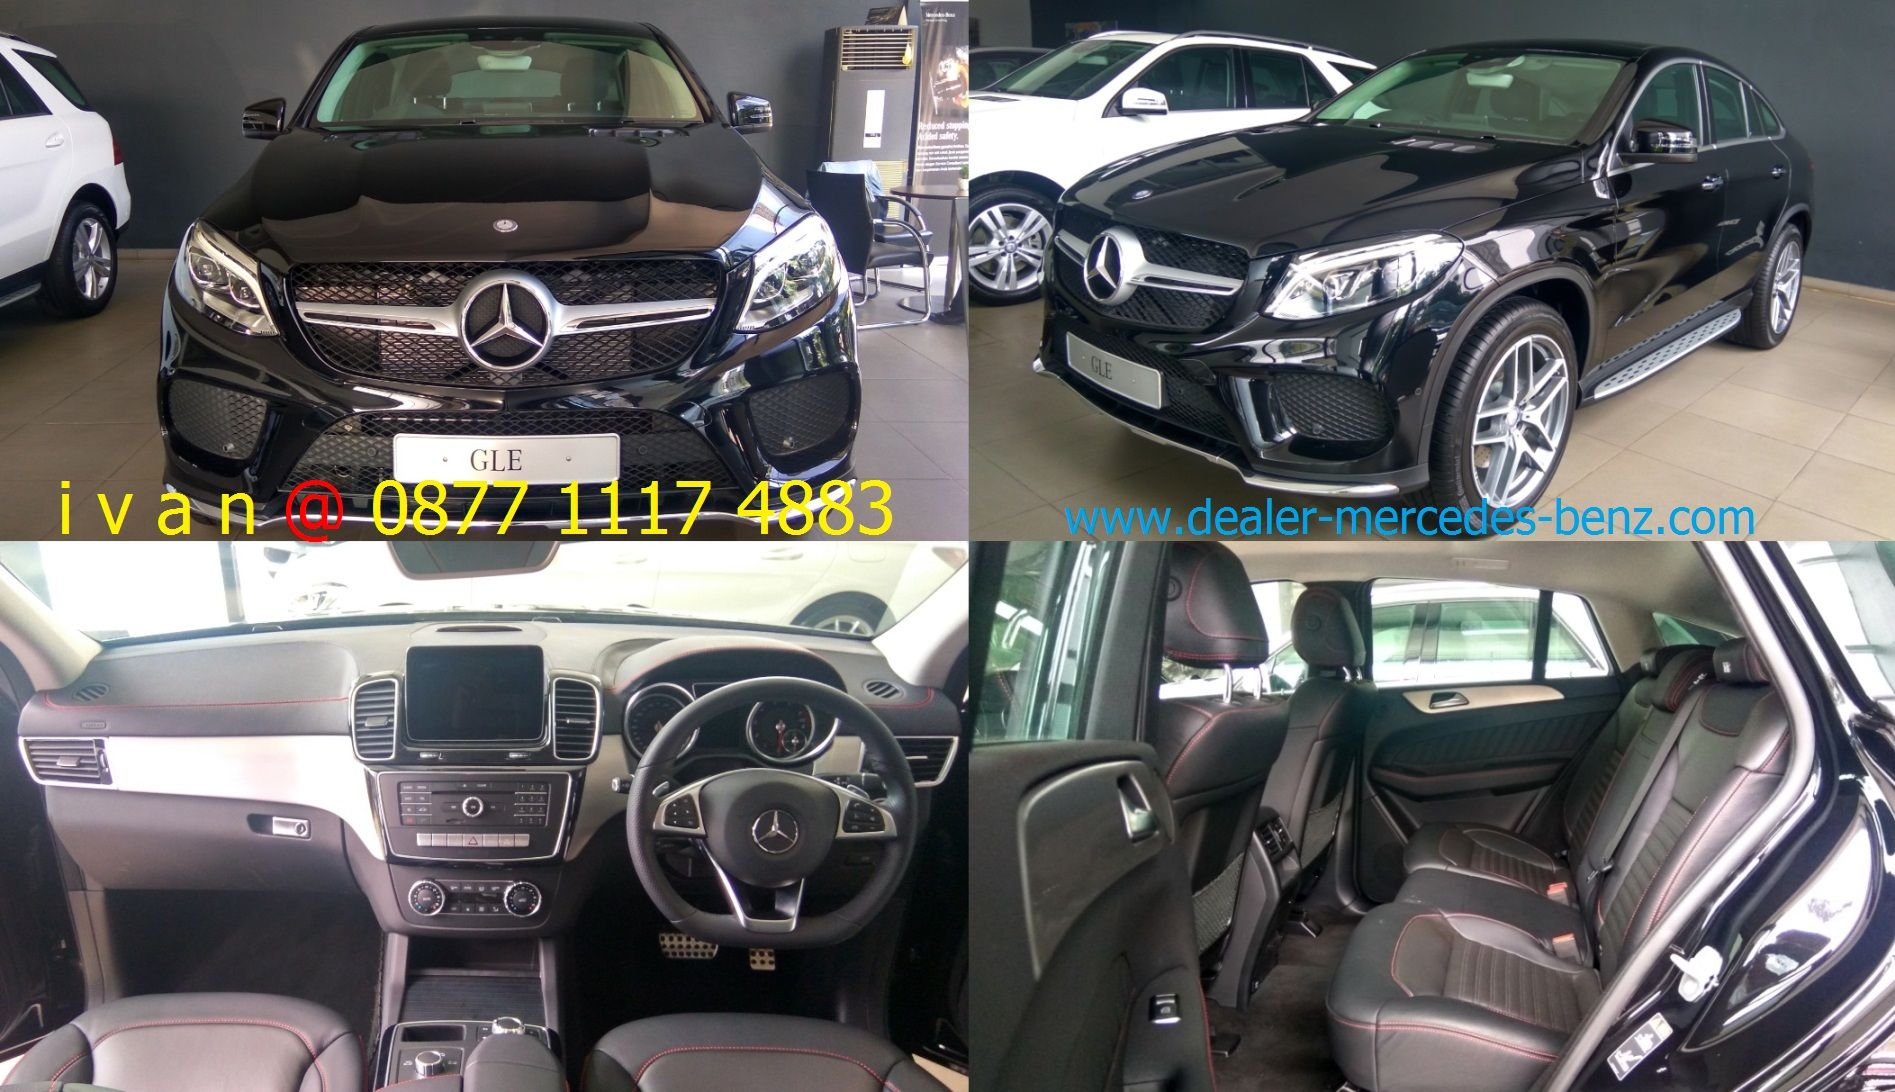 Gle Class Gle 400 Coupe Amg Line 2017 Indonesia Obsidiant